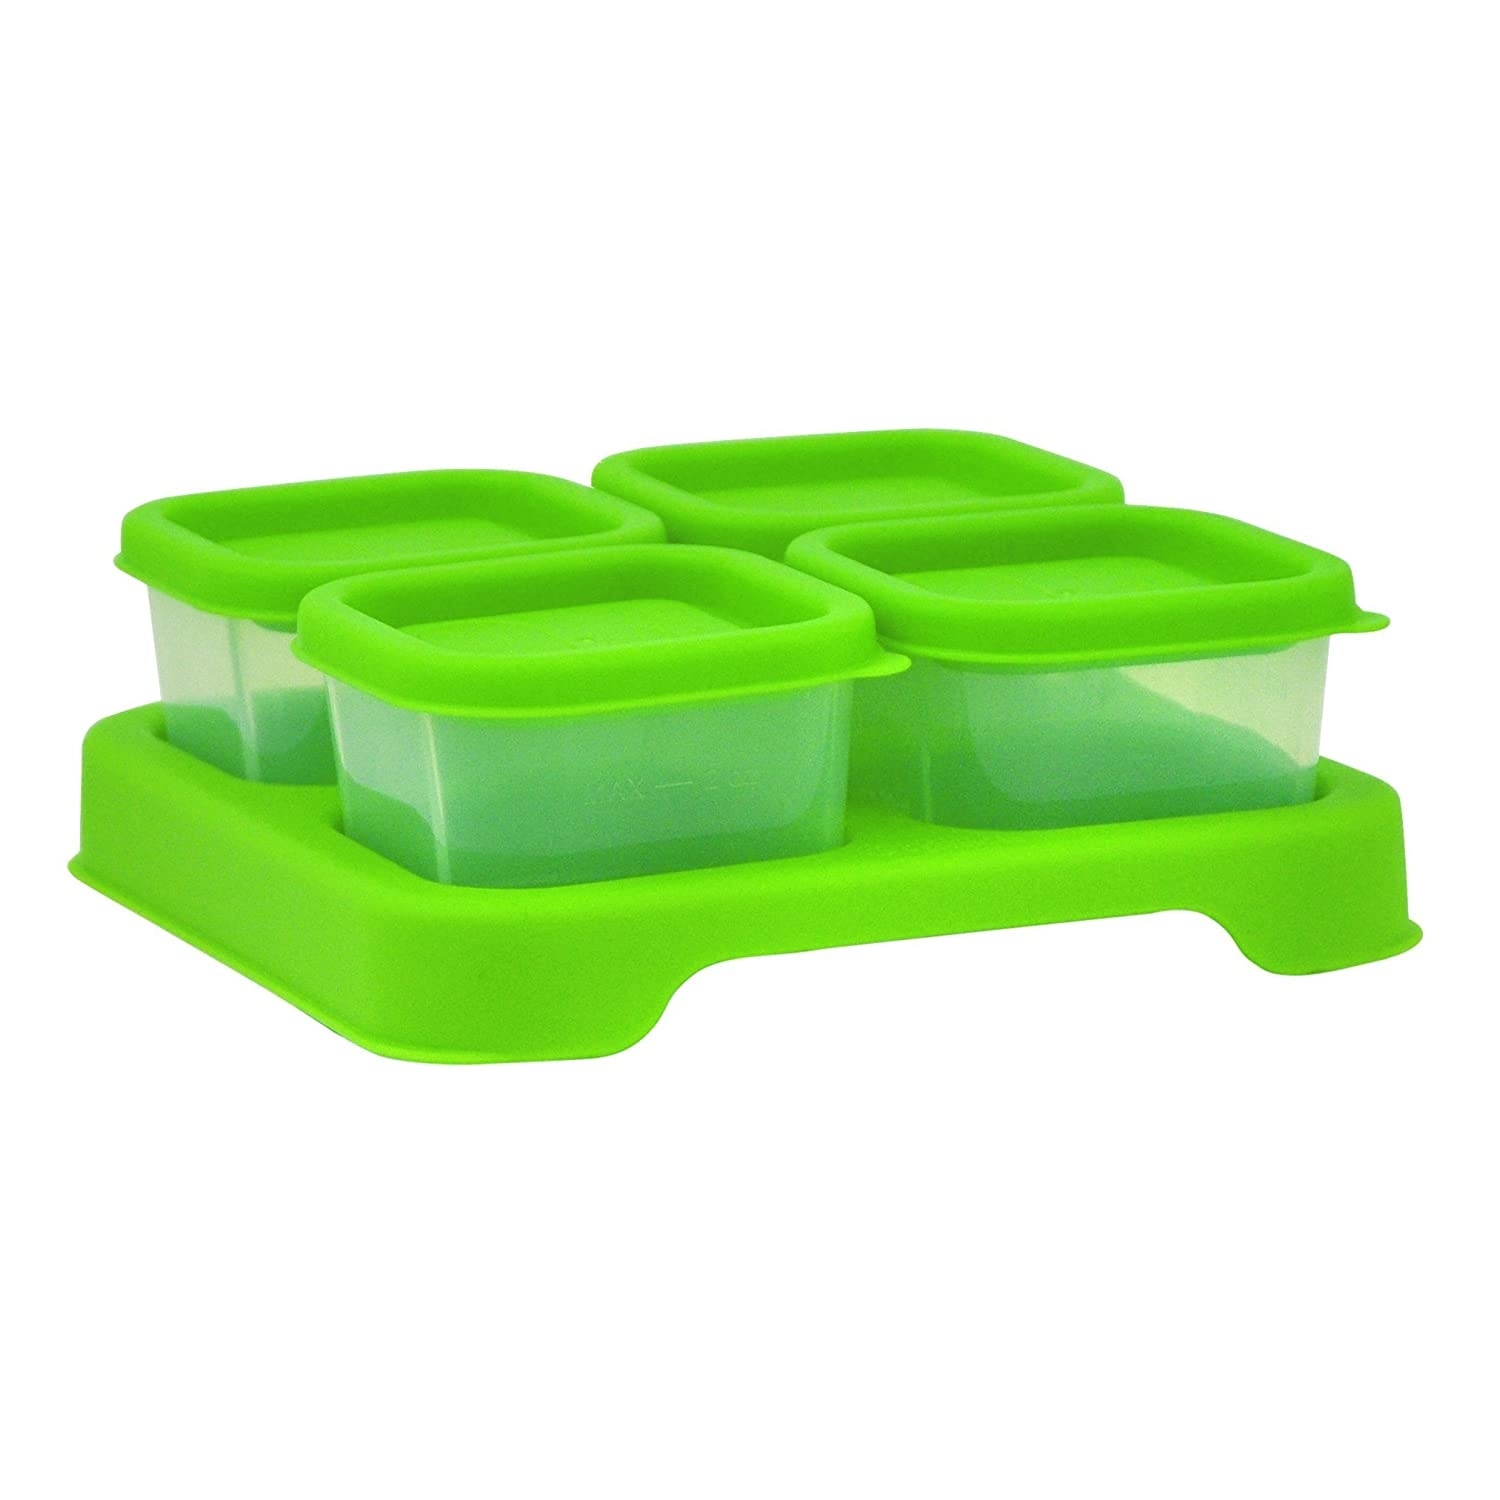 Amazon.com : green sprouts Fresh Baby Food Unbreakable Cubes, Green, 2 Ounce : Baby